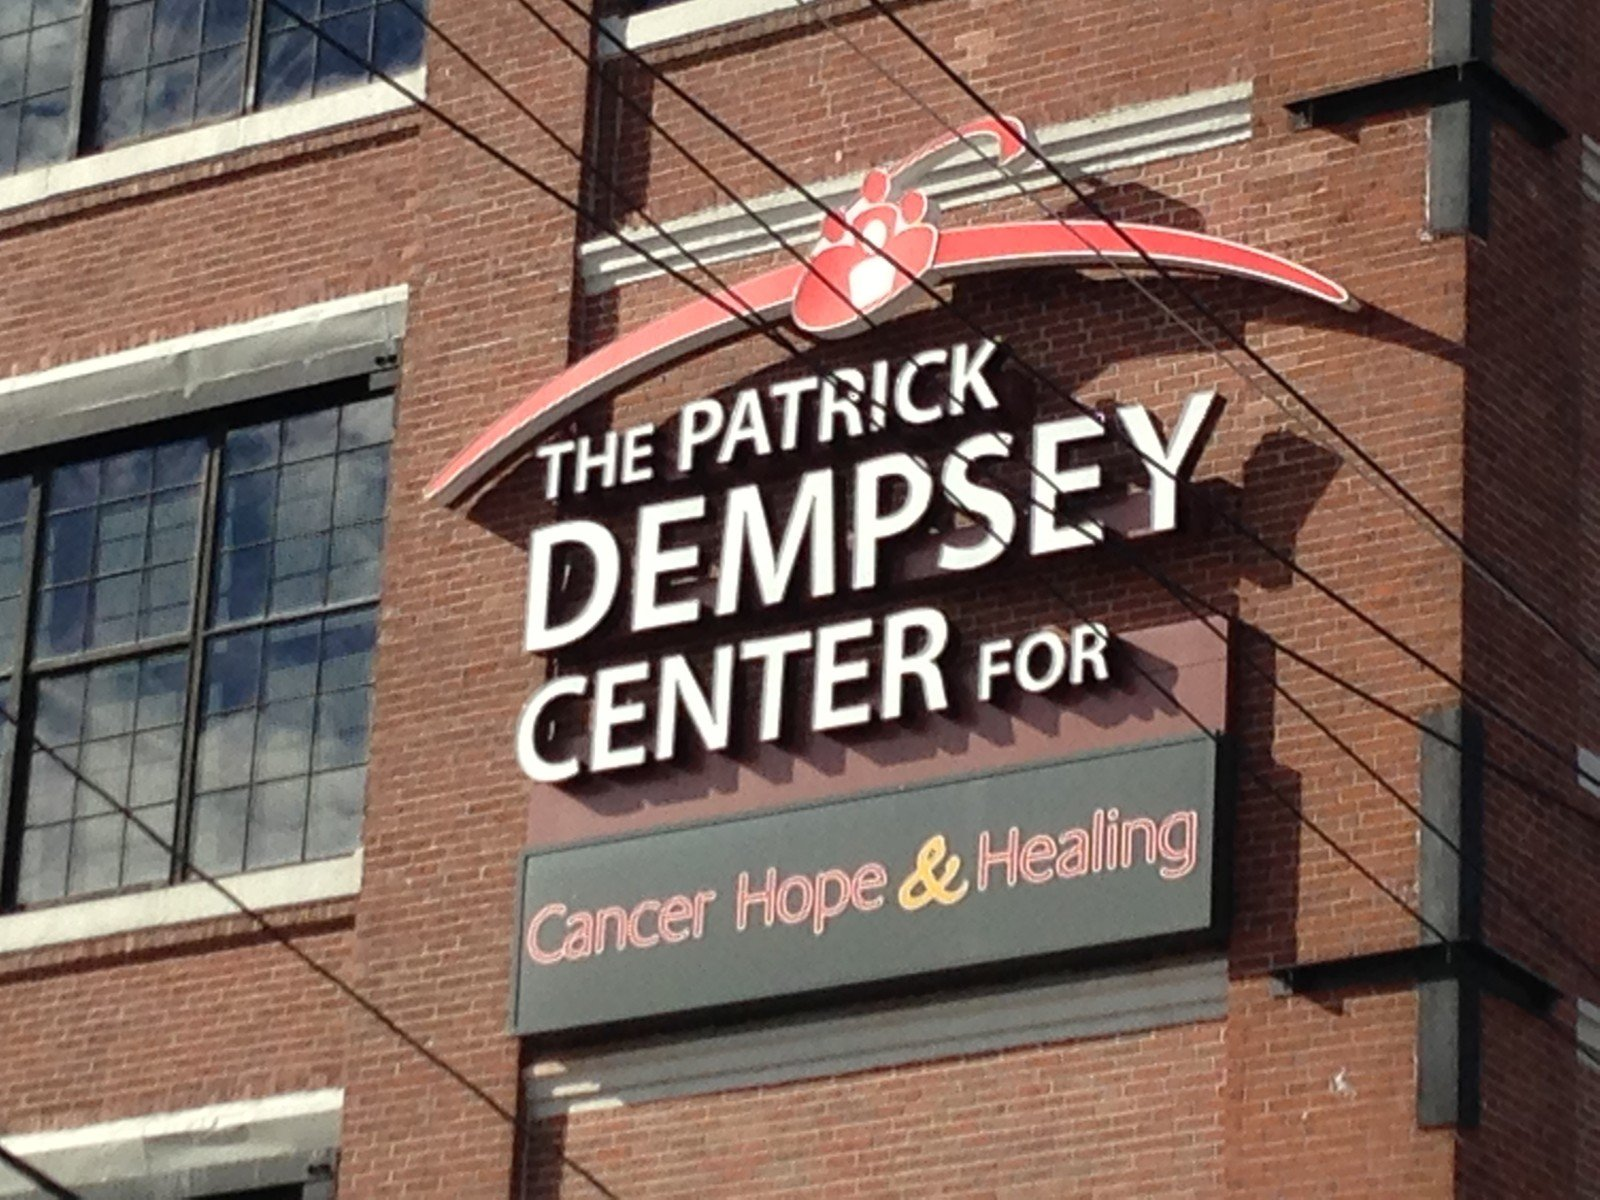 patrick-dempsey-center-for-cancer-hope-and-healing